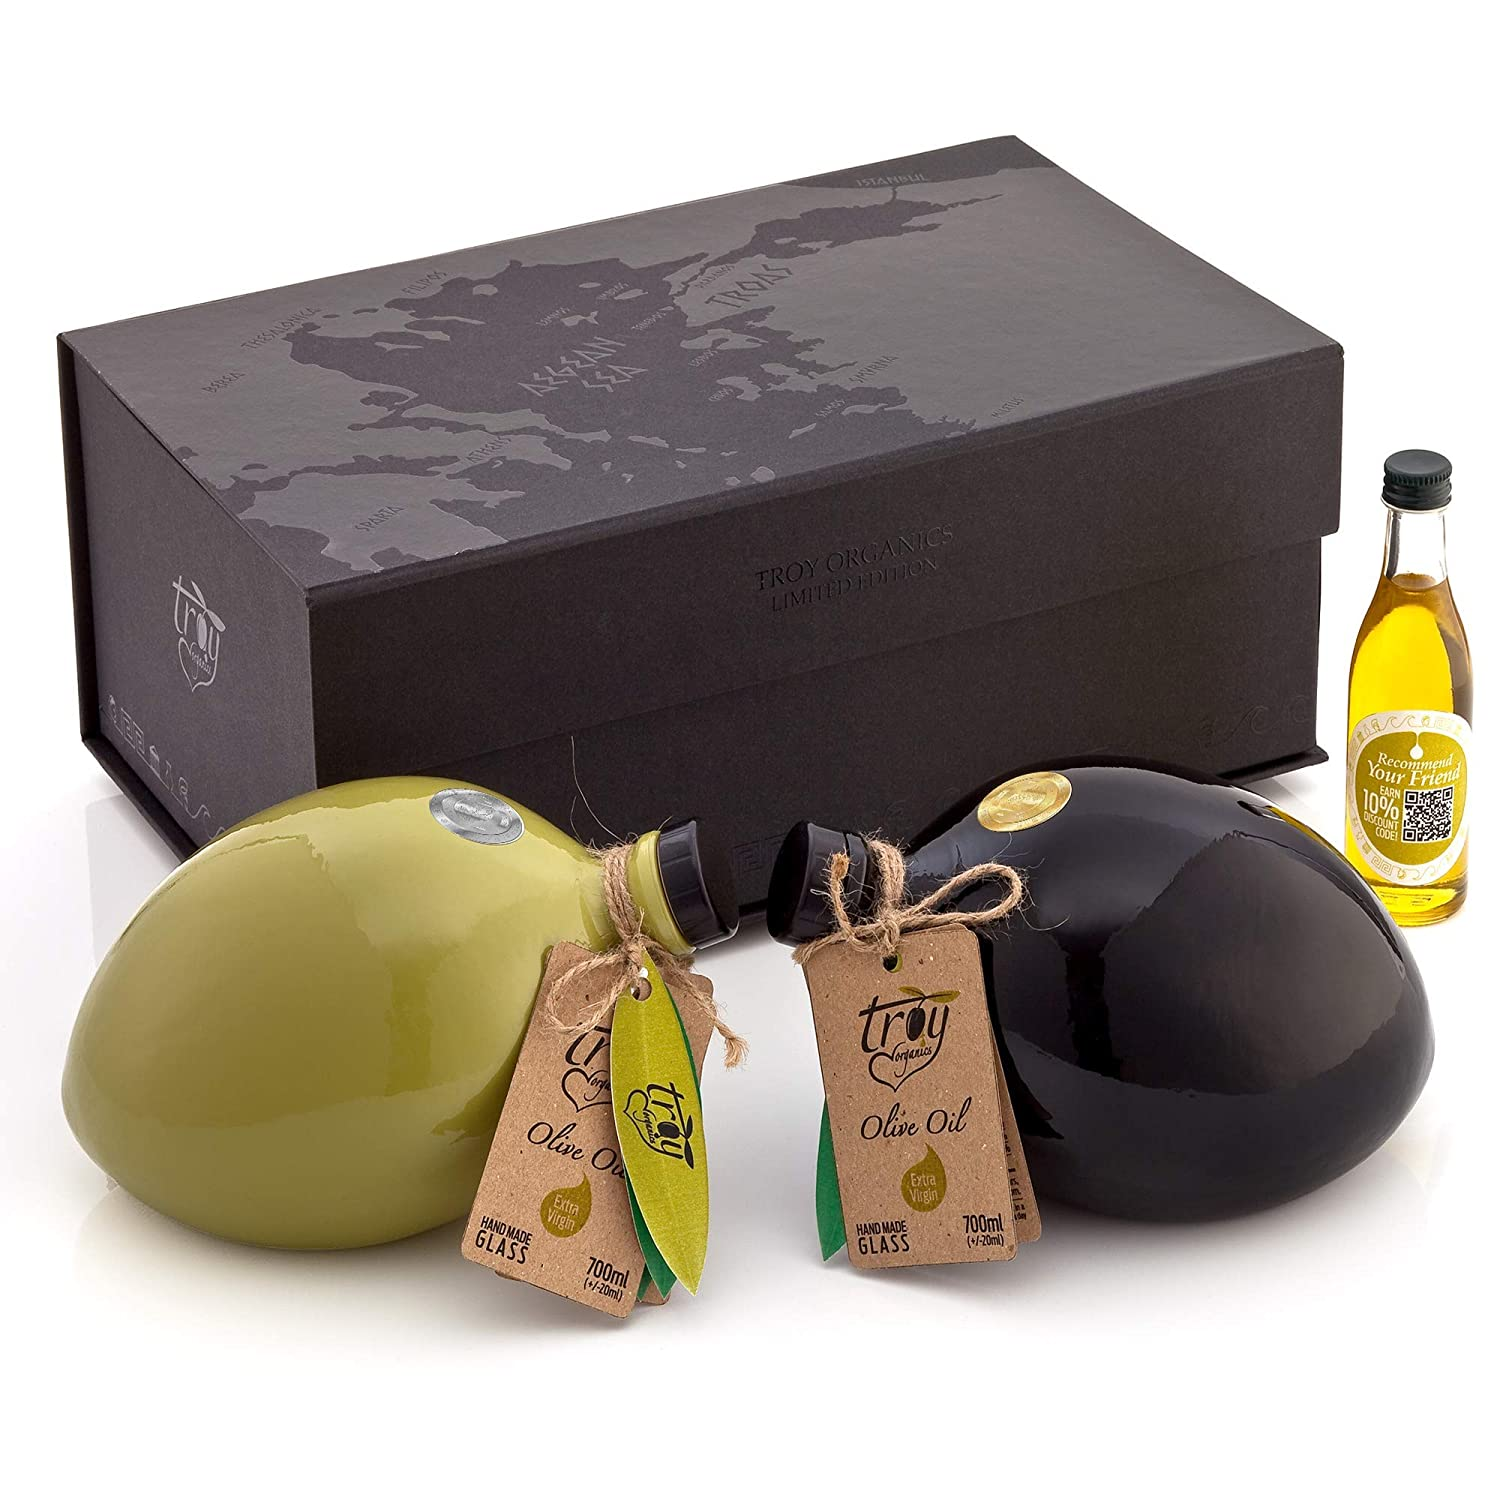 Troy Organics | Olive Oil Gift Set, Extra Virgin, Organic, First Cold Press (2020 Limited Edition) | Early Harvest, %100 Pure, Handmade Glass, Set of 2 - Filtered & Unfiltered - (total 45.60 Fl. Oz.)